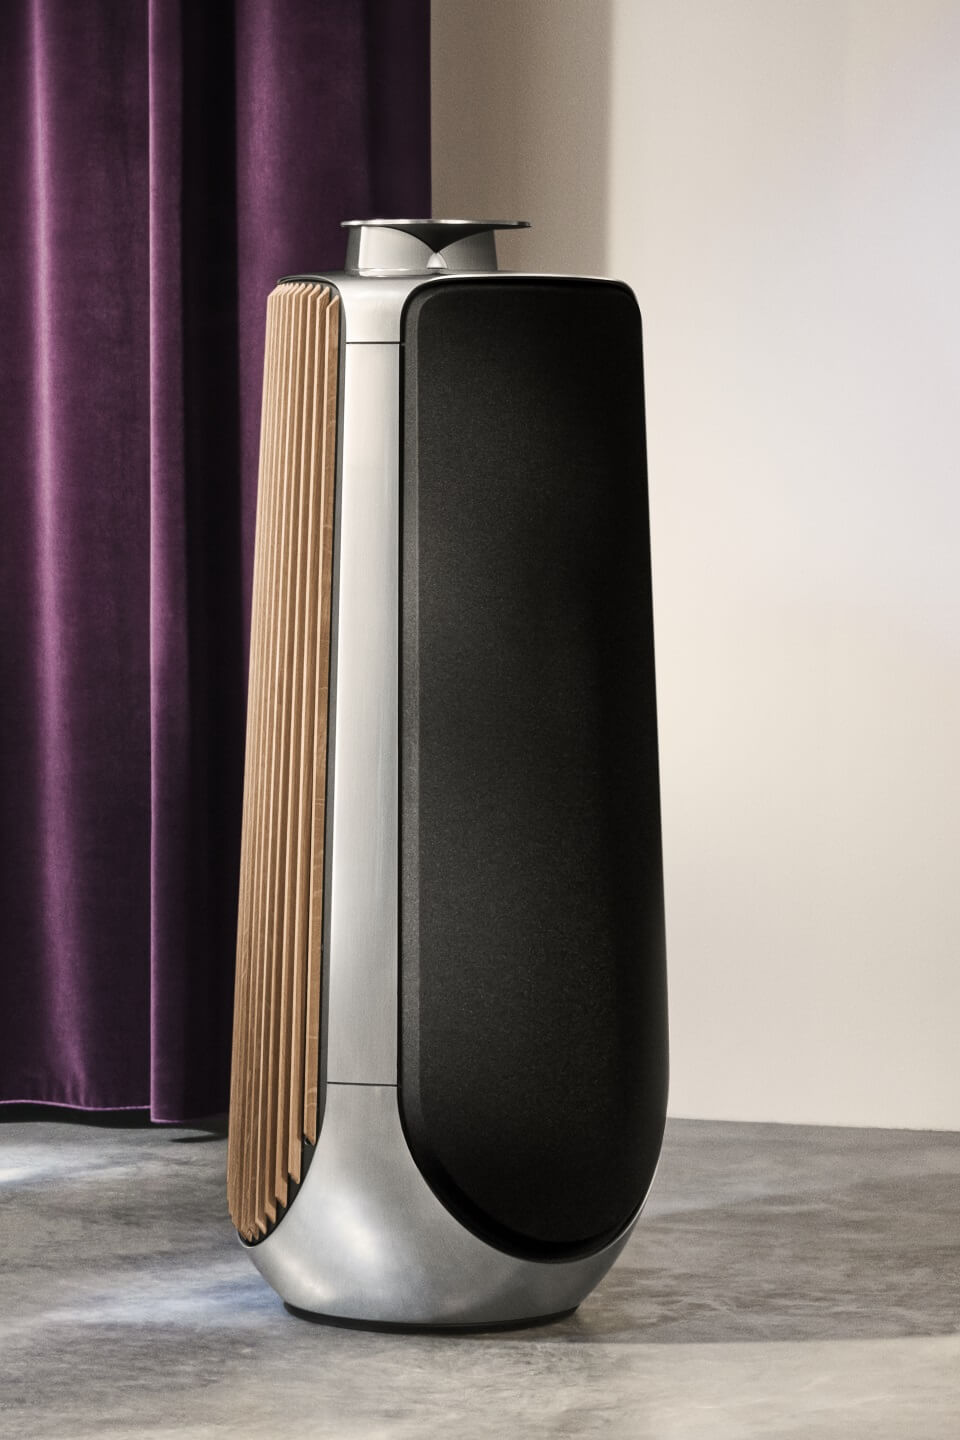 BeoLab 50 silver with oak panels